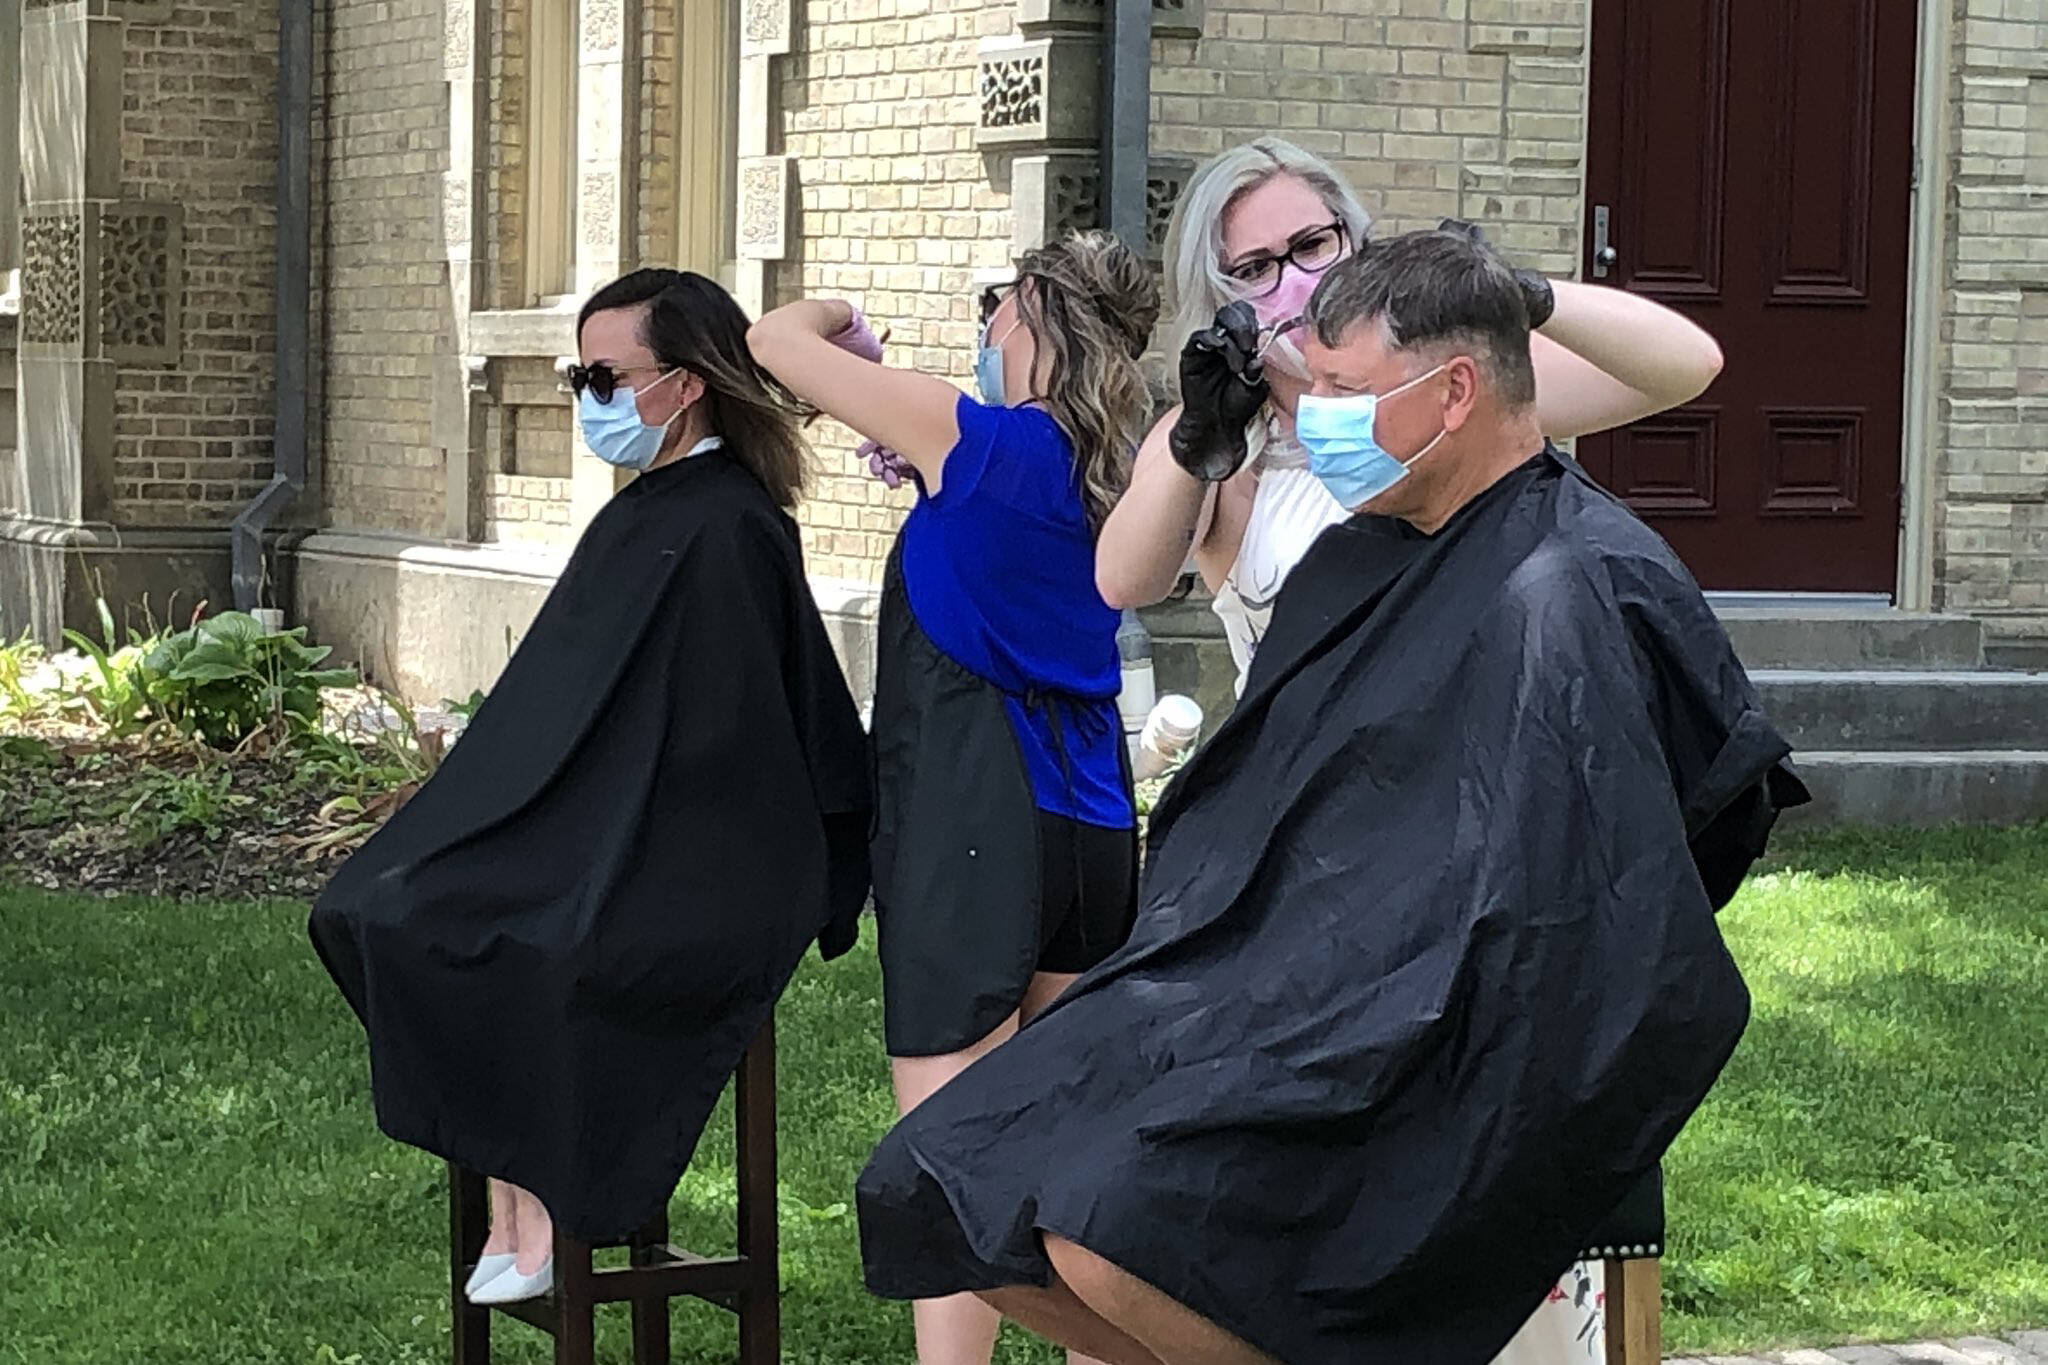 ontario haircut protest